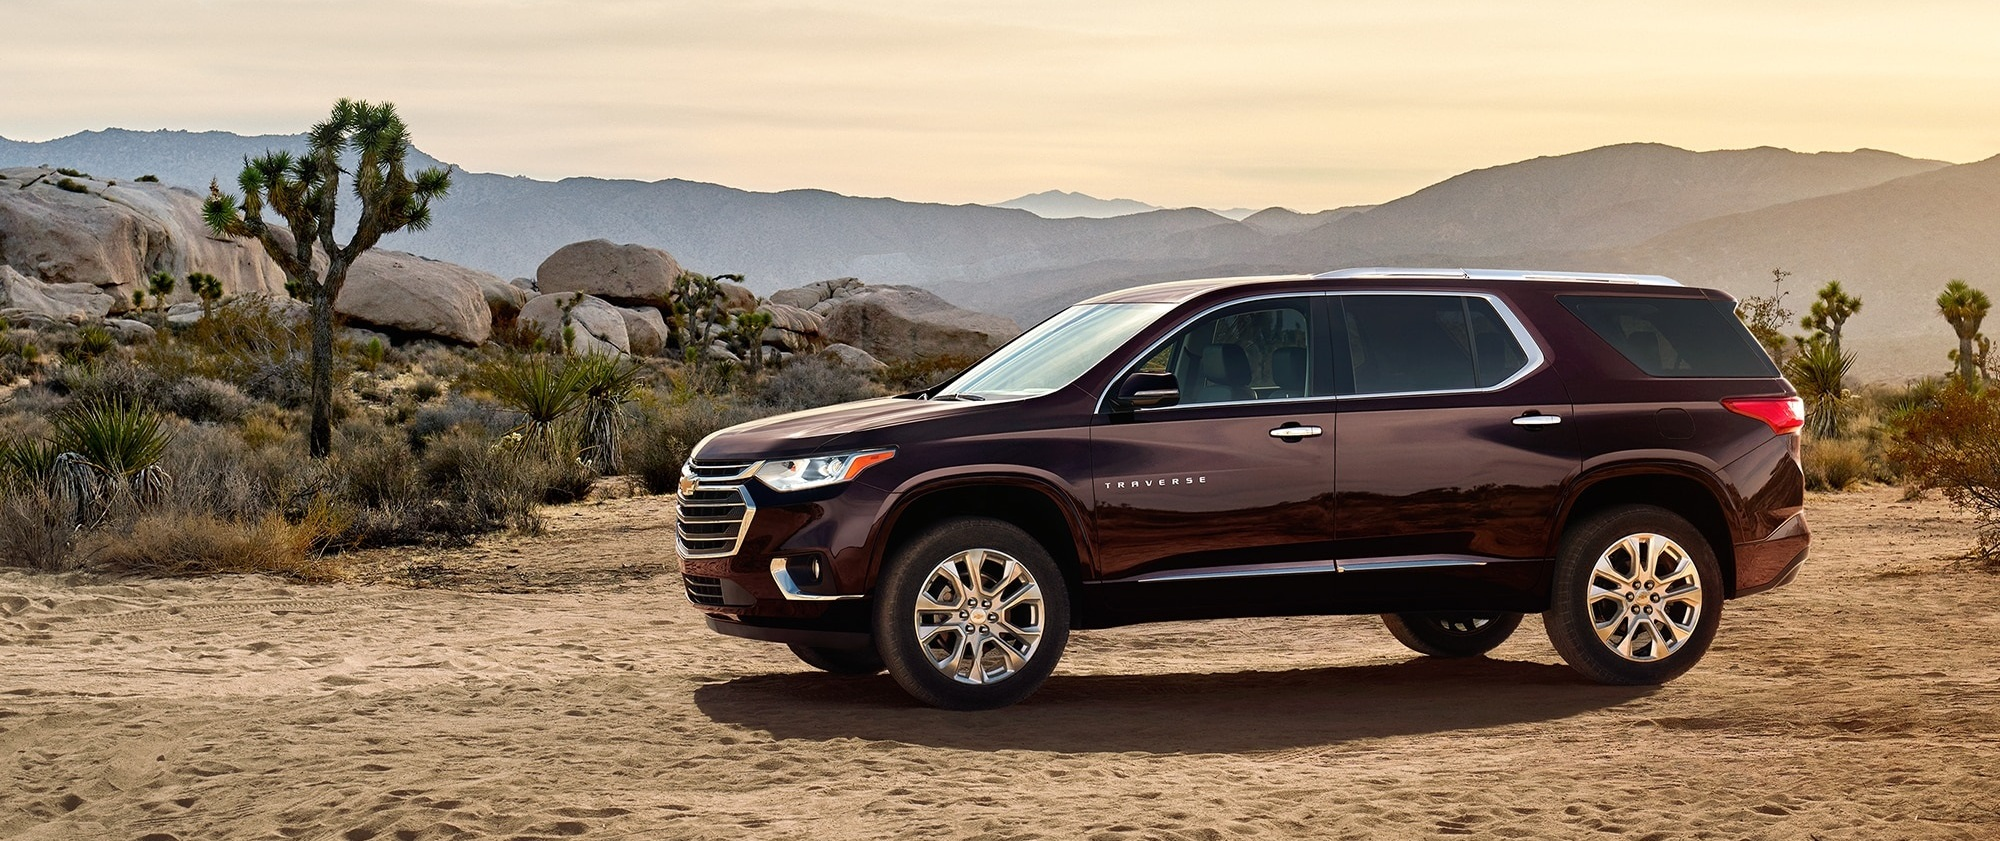 2020 Chevrolet Traverse for Sale near Homewood, IL